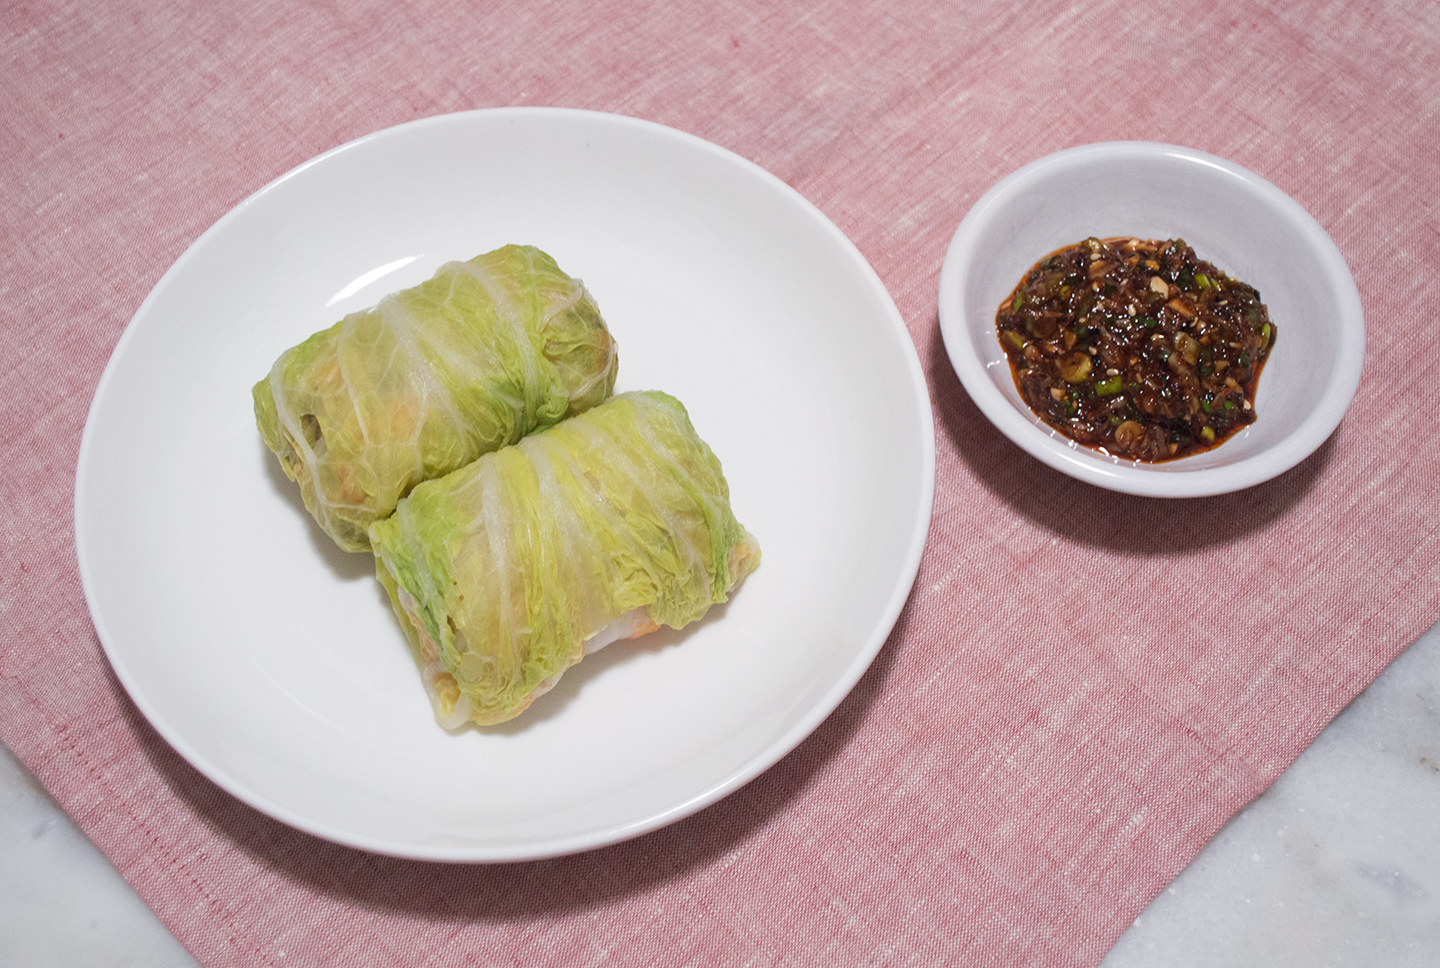 Dwaejigogi Baechu Ssam (돼지고기 배추쌈) - Korean-Style Pork Cabbage Rolls